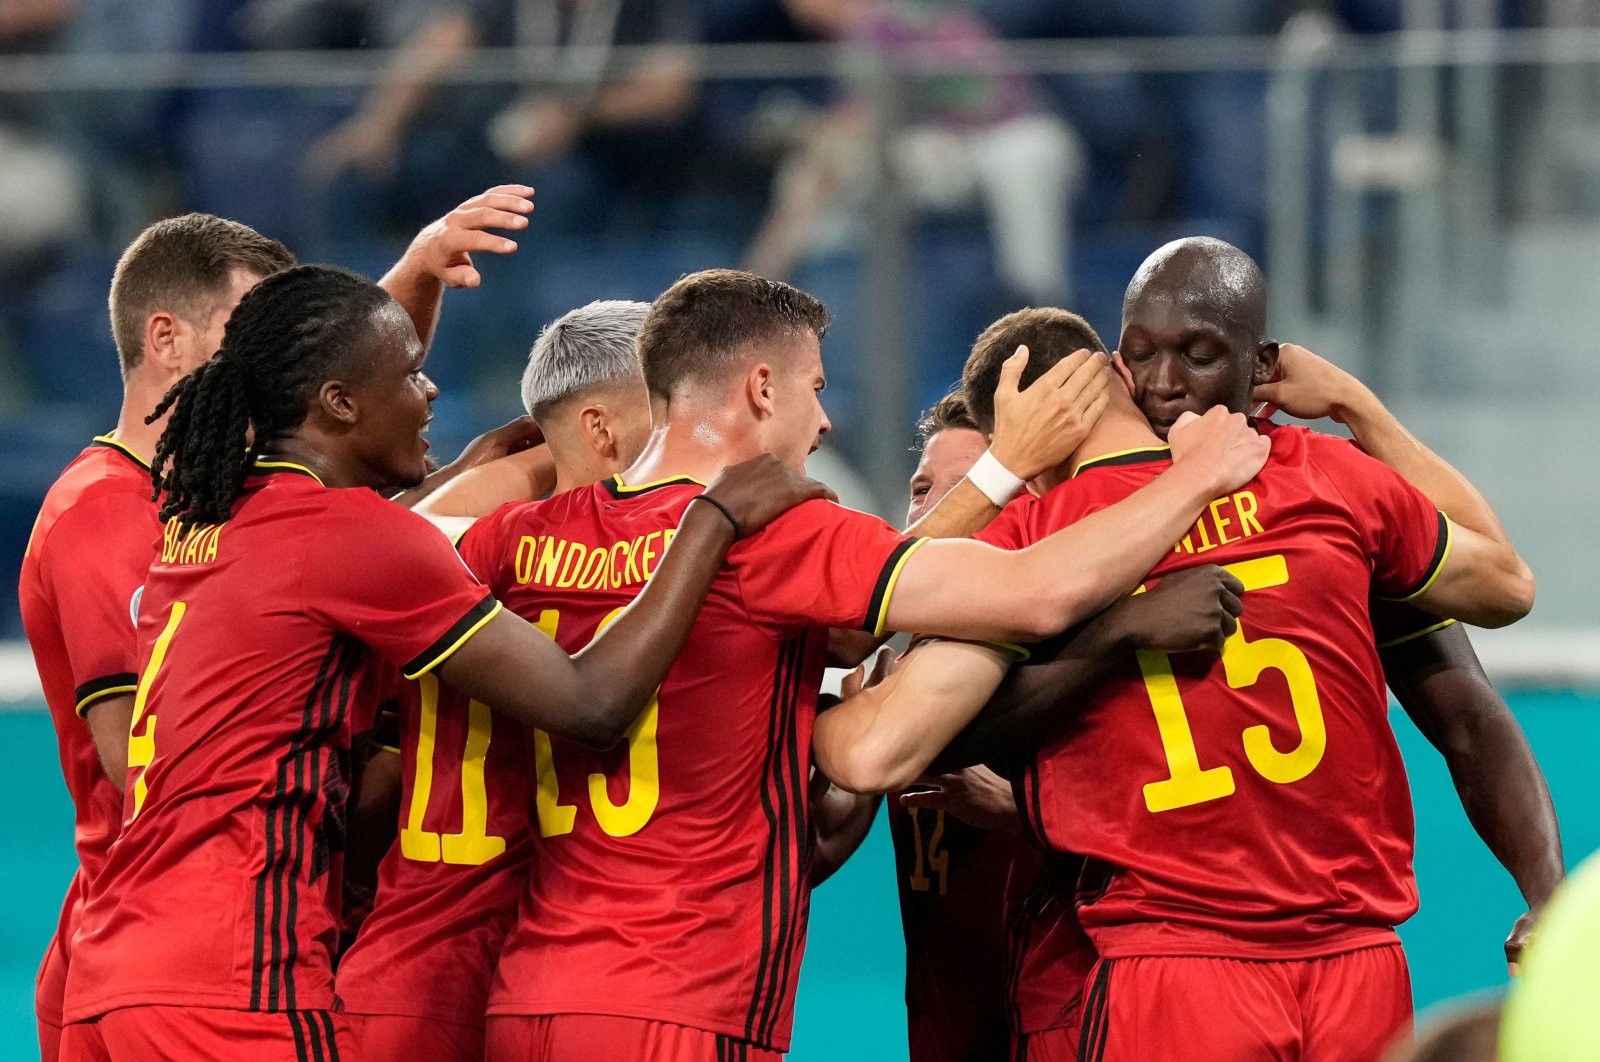 Belgium players celebrate a goal during a Euro 2020 match against Russia at the Saint Petersburg Stadium, in Saint Petersburg, Russia, June 12, 2021. (AFP Photo)